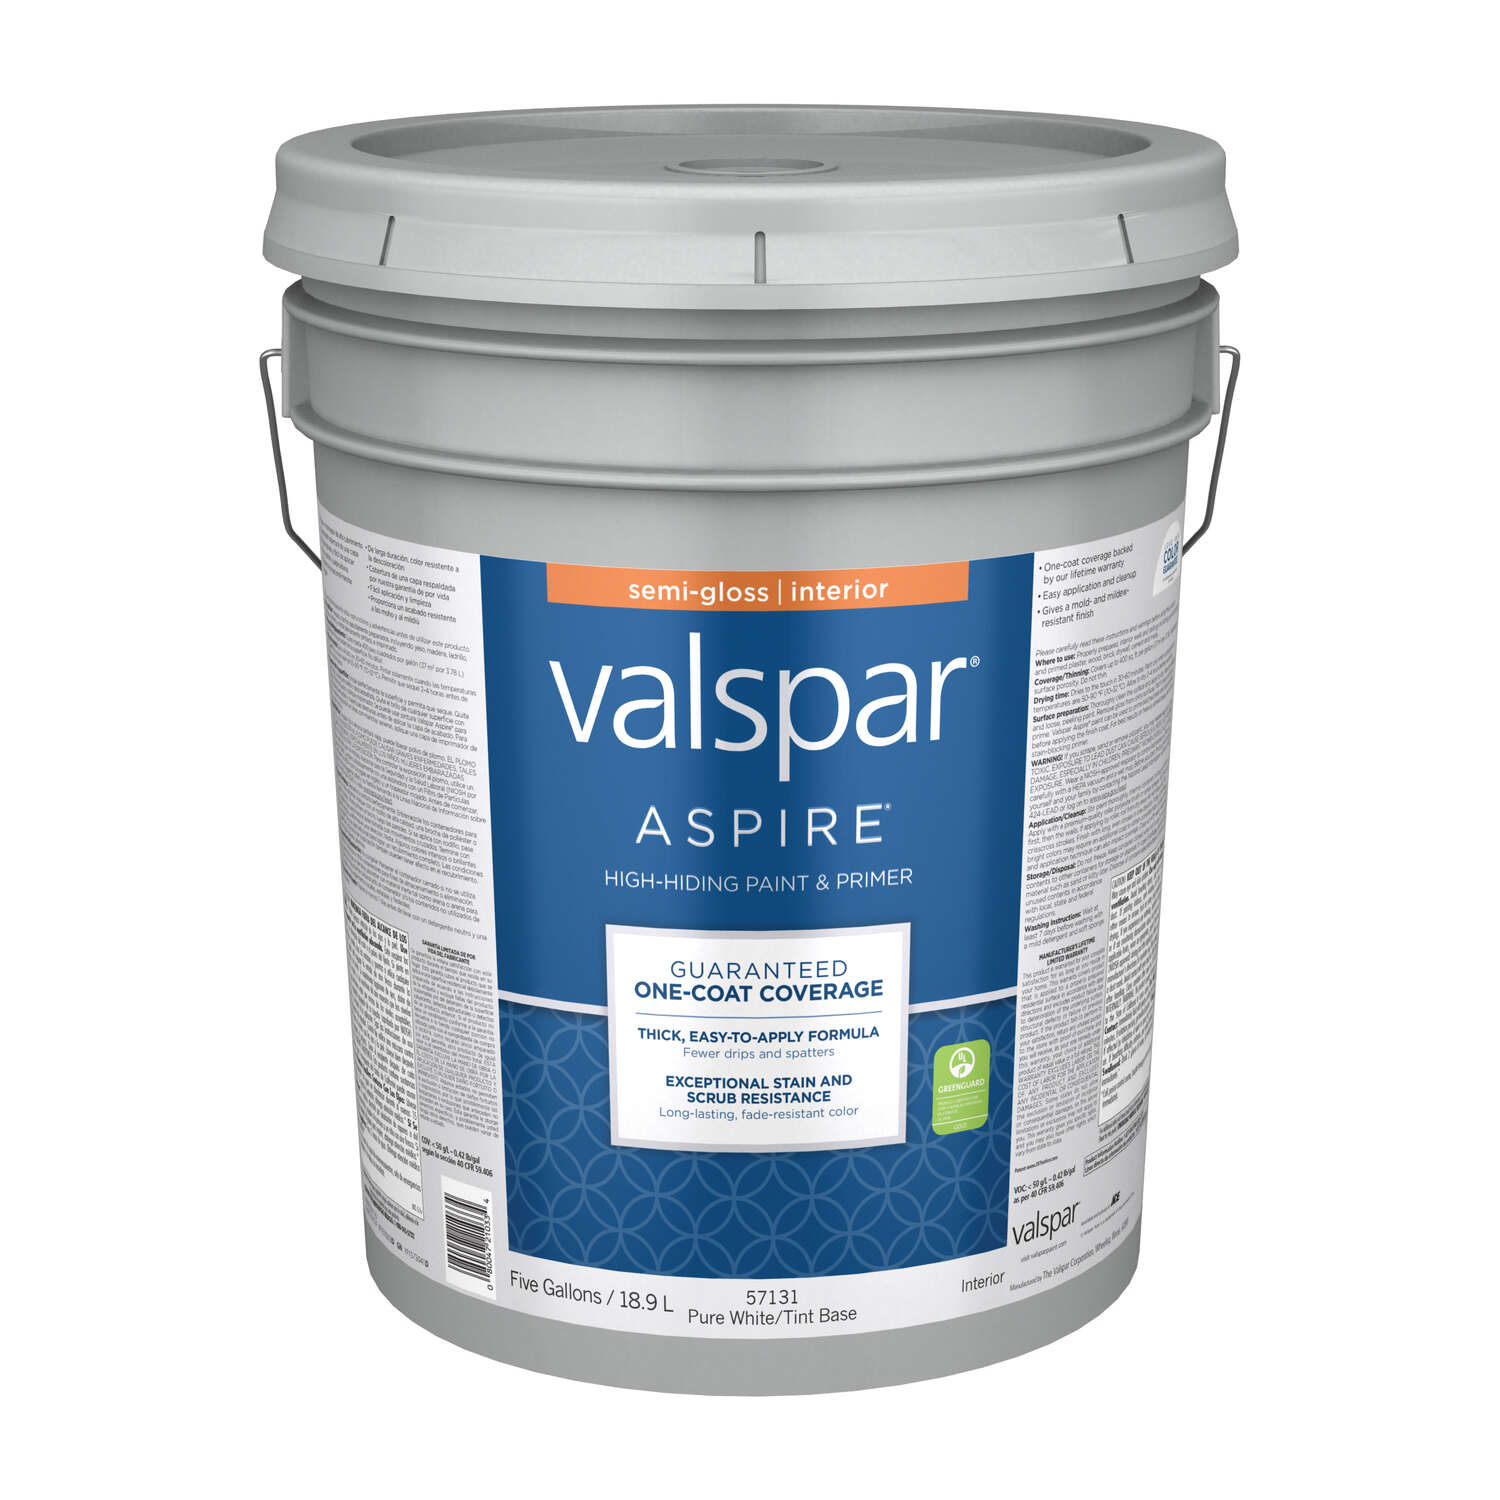 Valspar  Aspire  Semi-Gloss  Pure White Tint Base  Acylic Latex  5 gal. Paint and Primer  Tintable